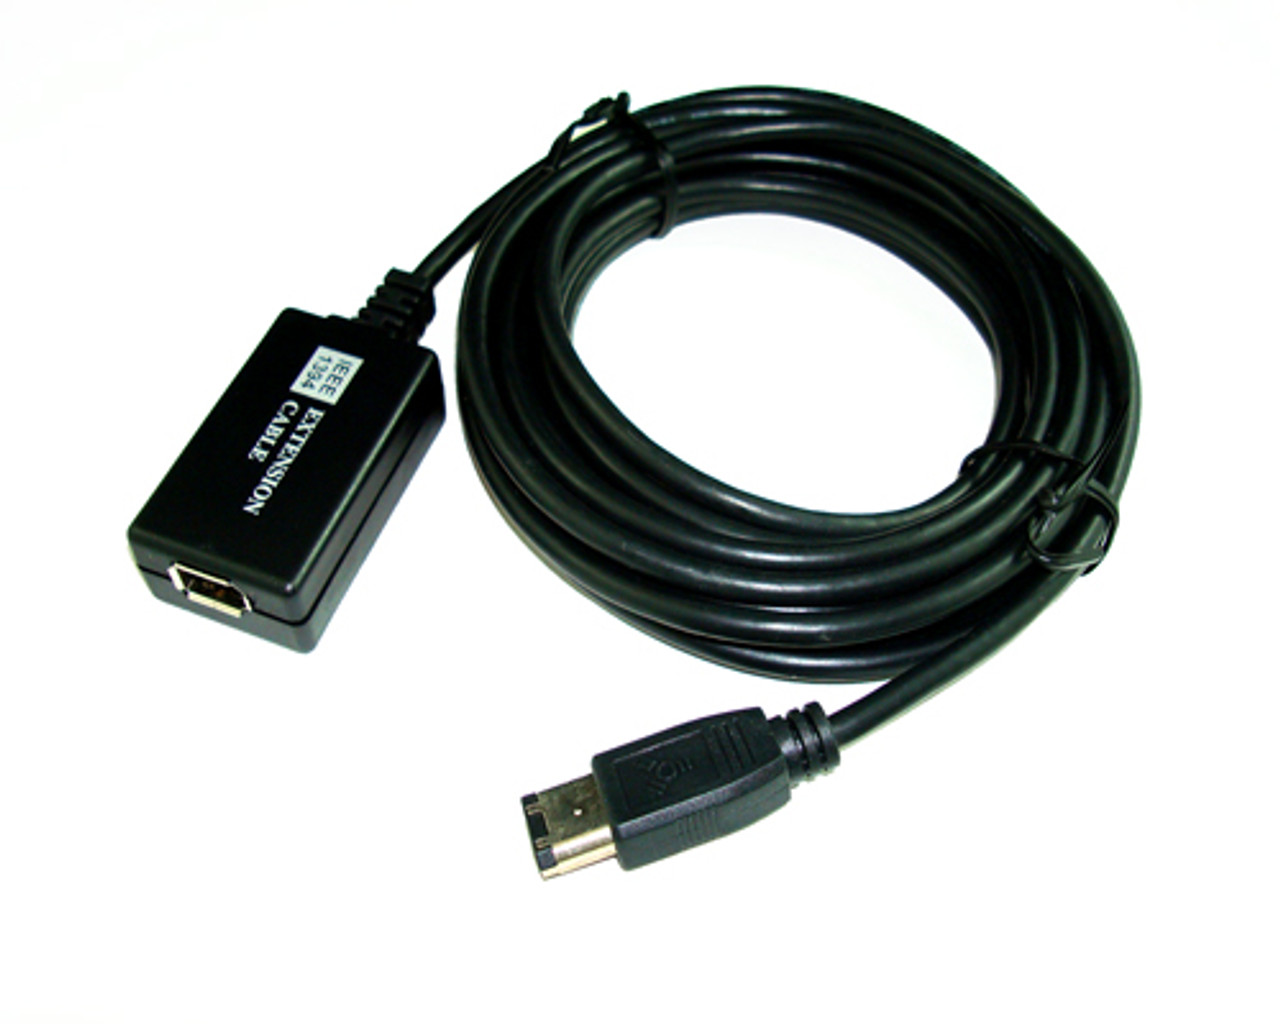 Product image for 5M 1394A Active Repeater Cable | CX Computer Superstore